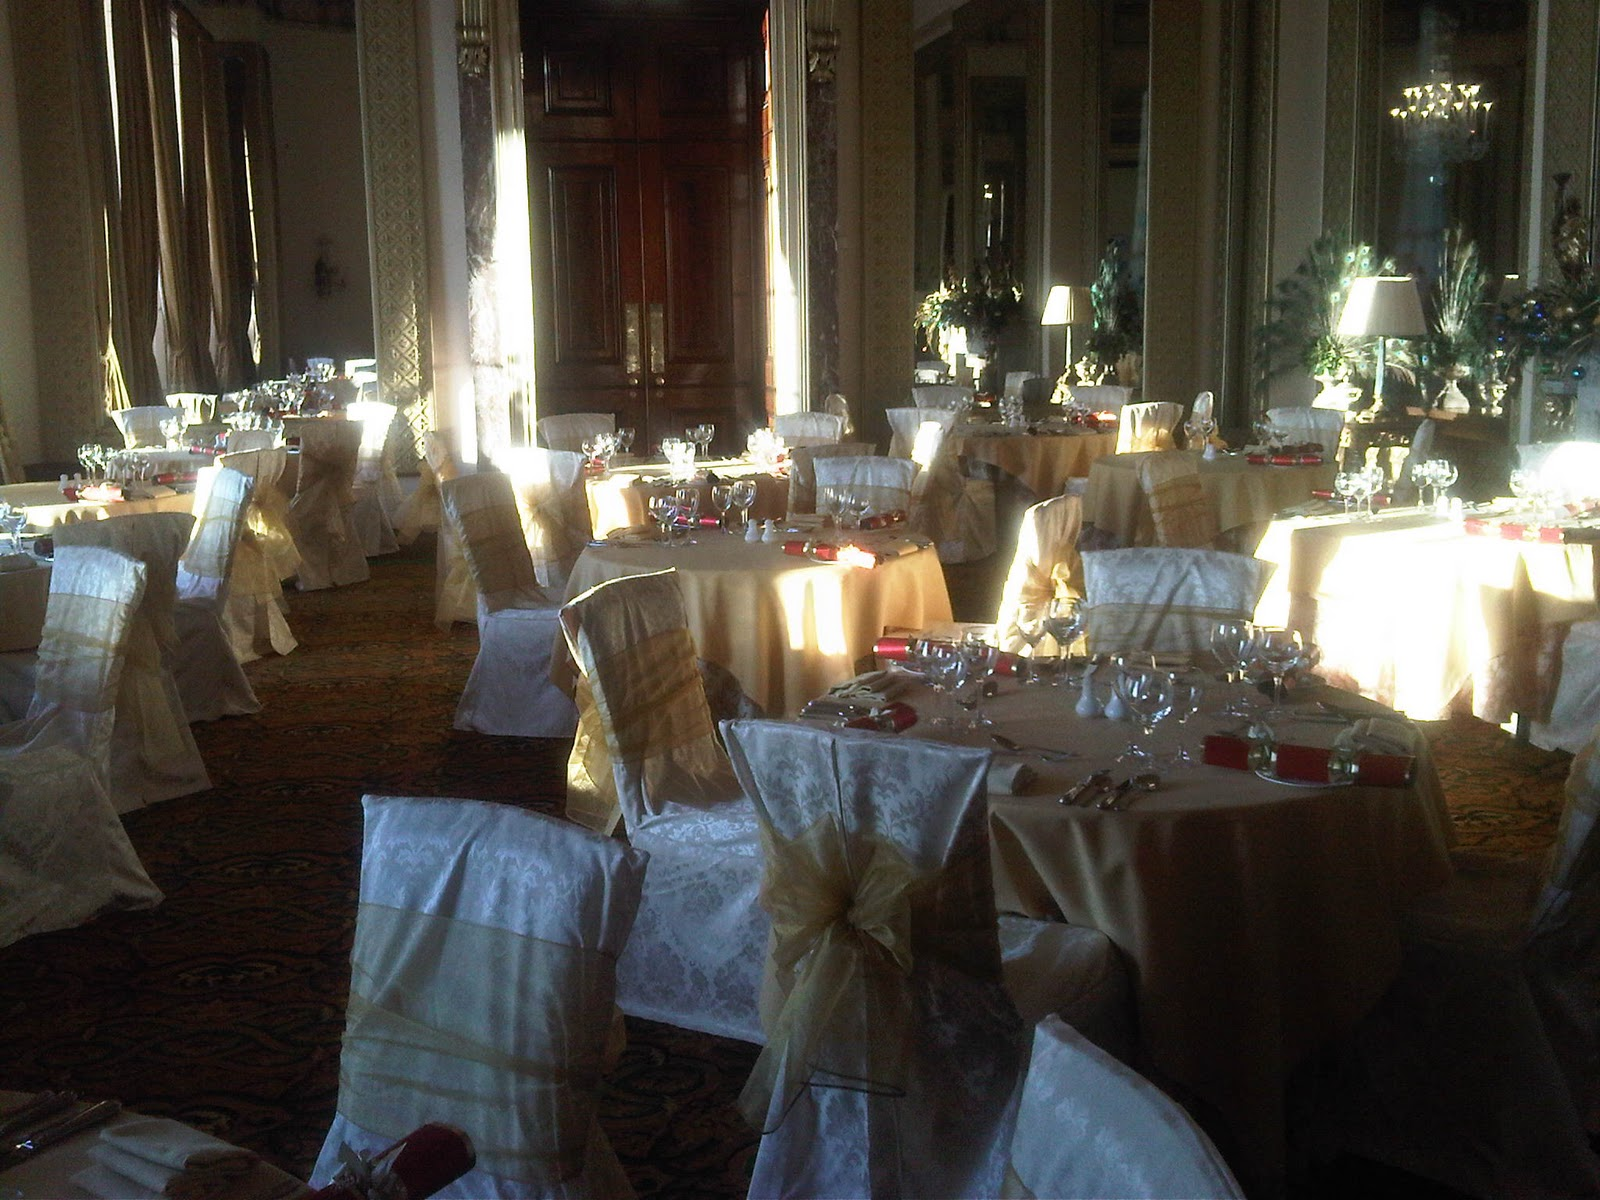 Christmas Wedding Chair Covers Refinishing Cane Back Chairs Simply Bows And Inspiration